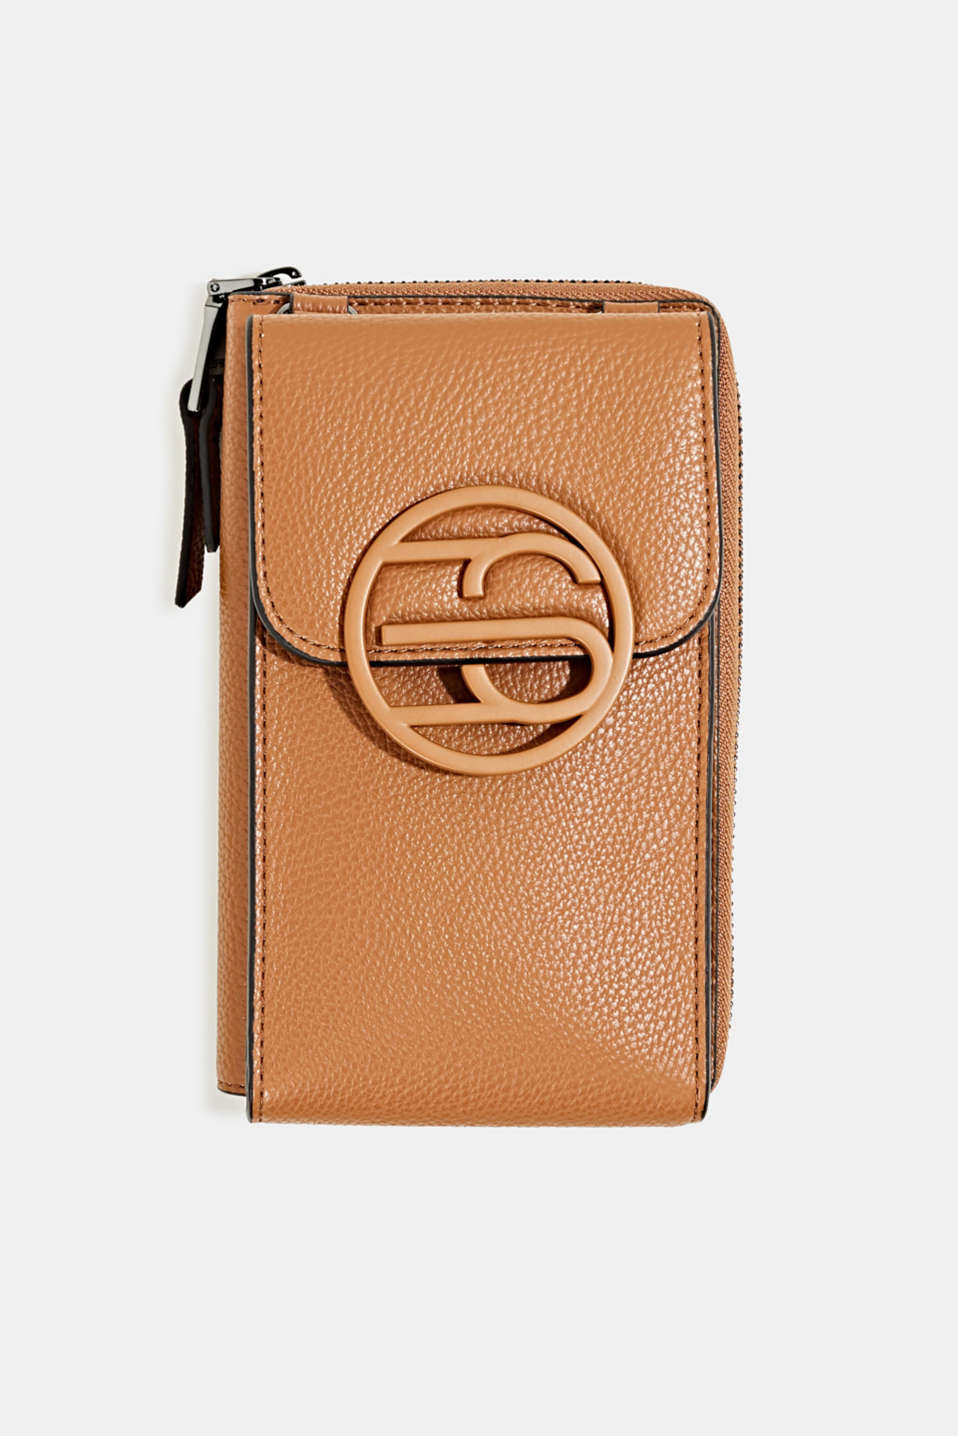 Esprit - Monogram range: phone bag and purse